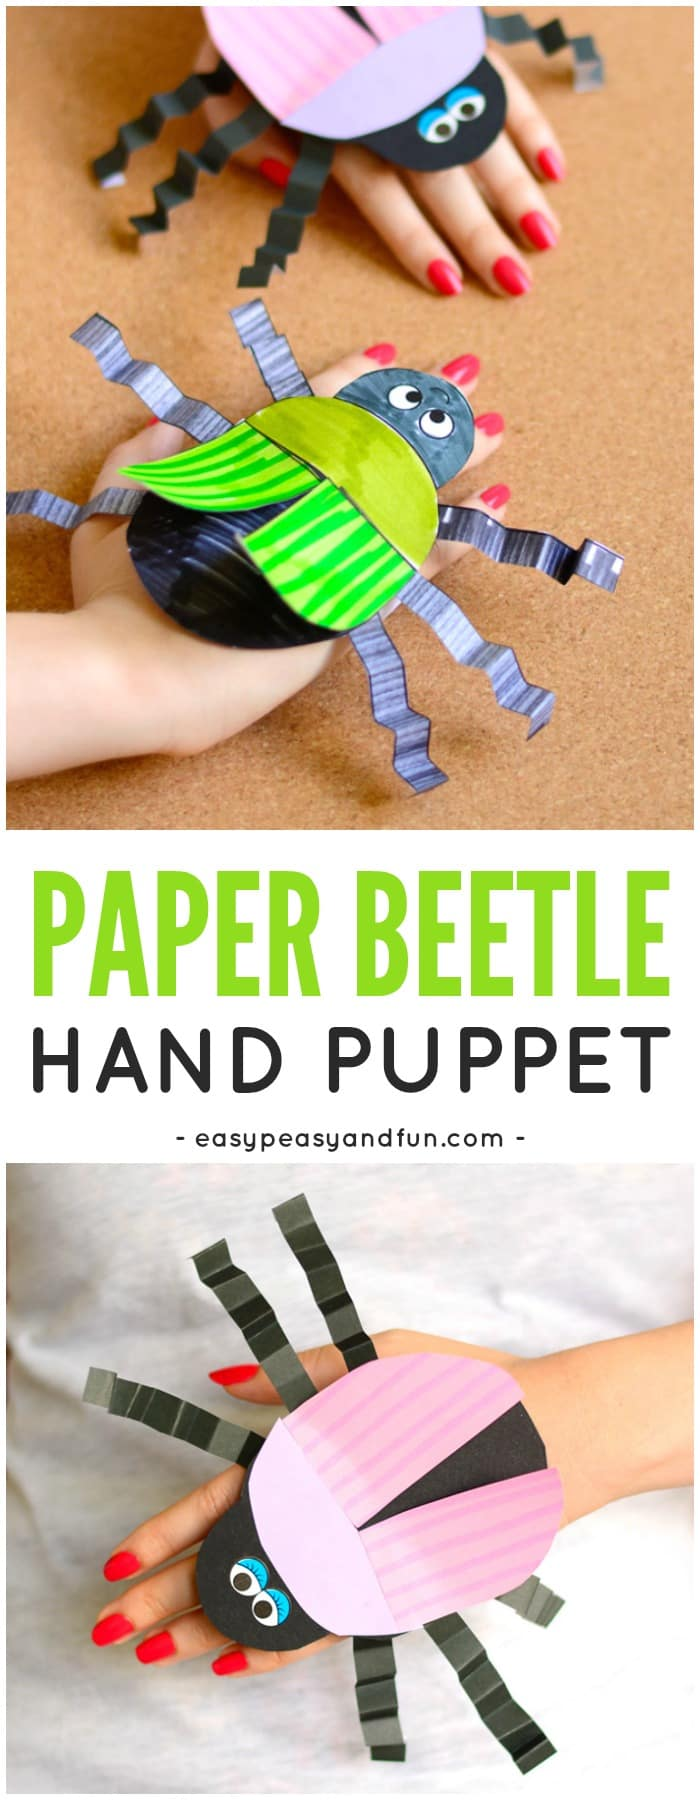 Beetle Paper Hand Puppet Template Craft for Kids to Make